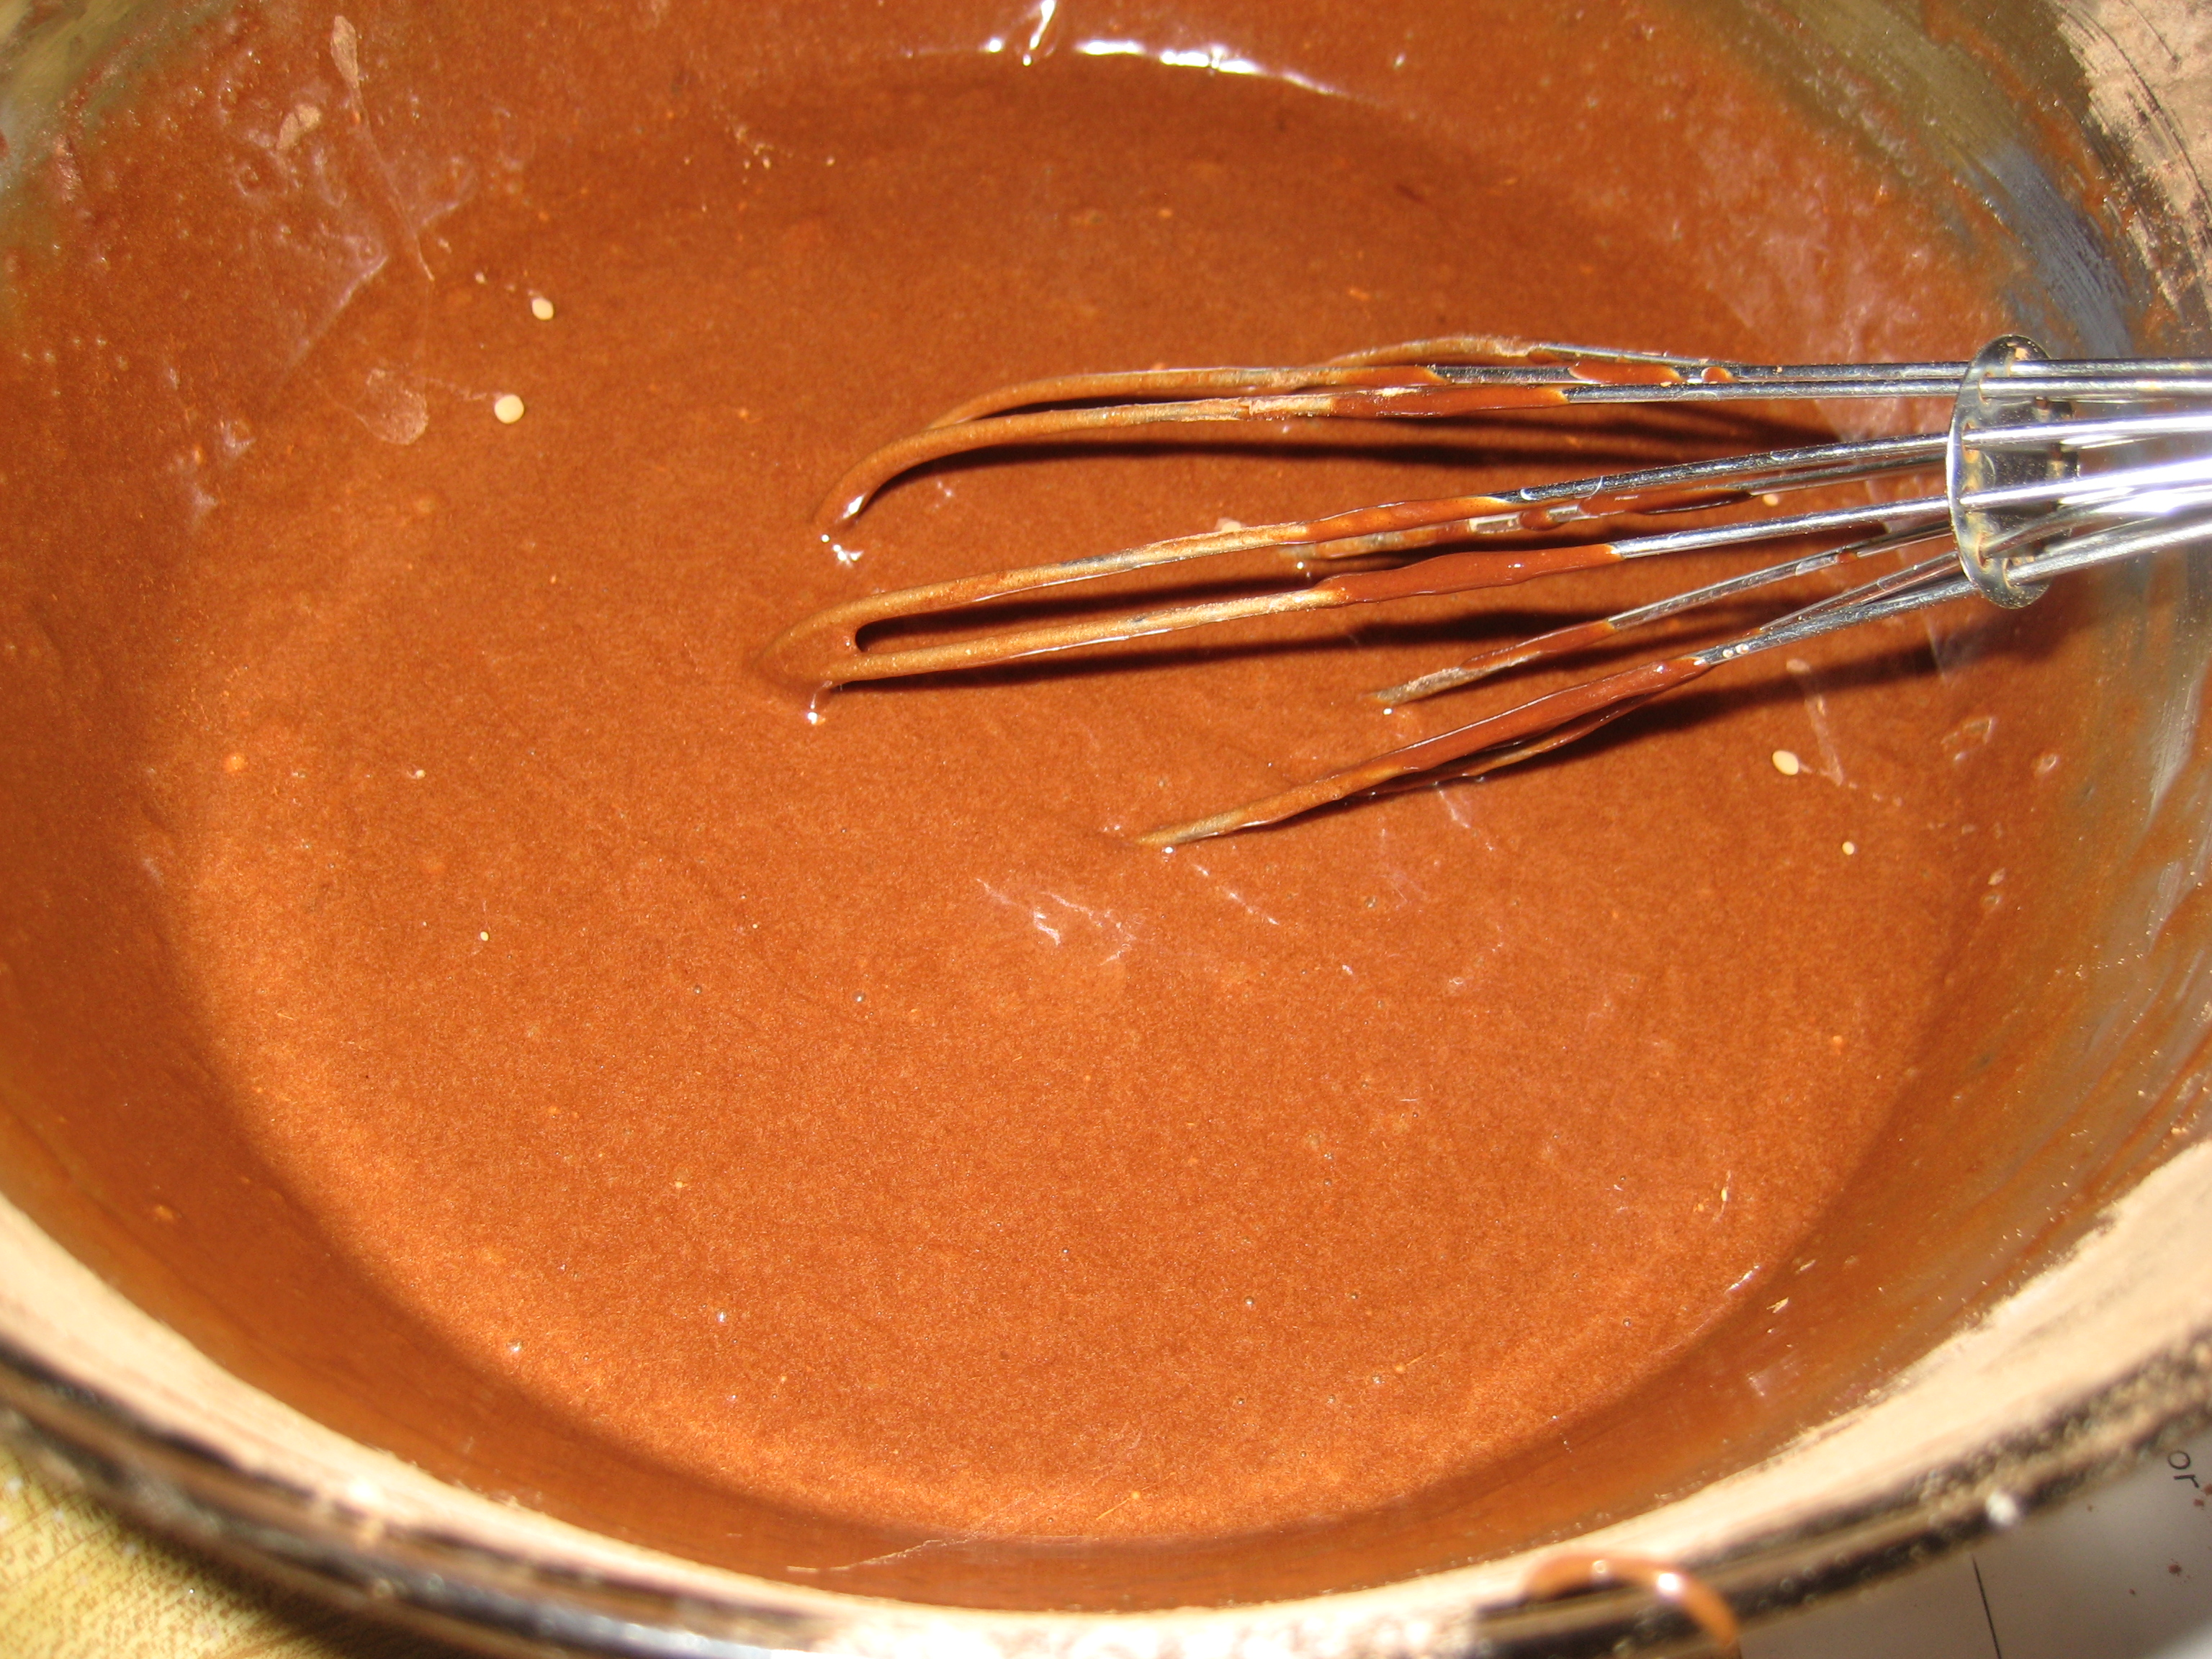 Whisking in the chocolate.